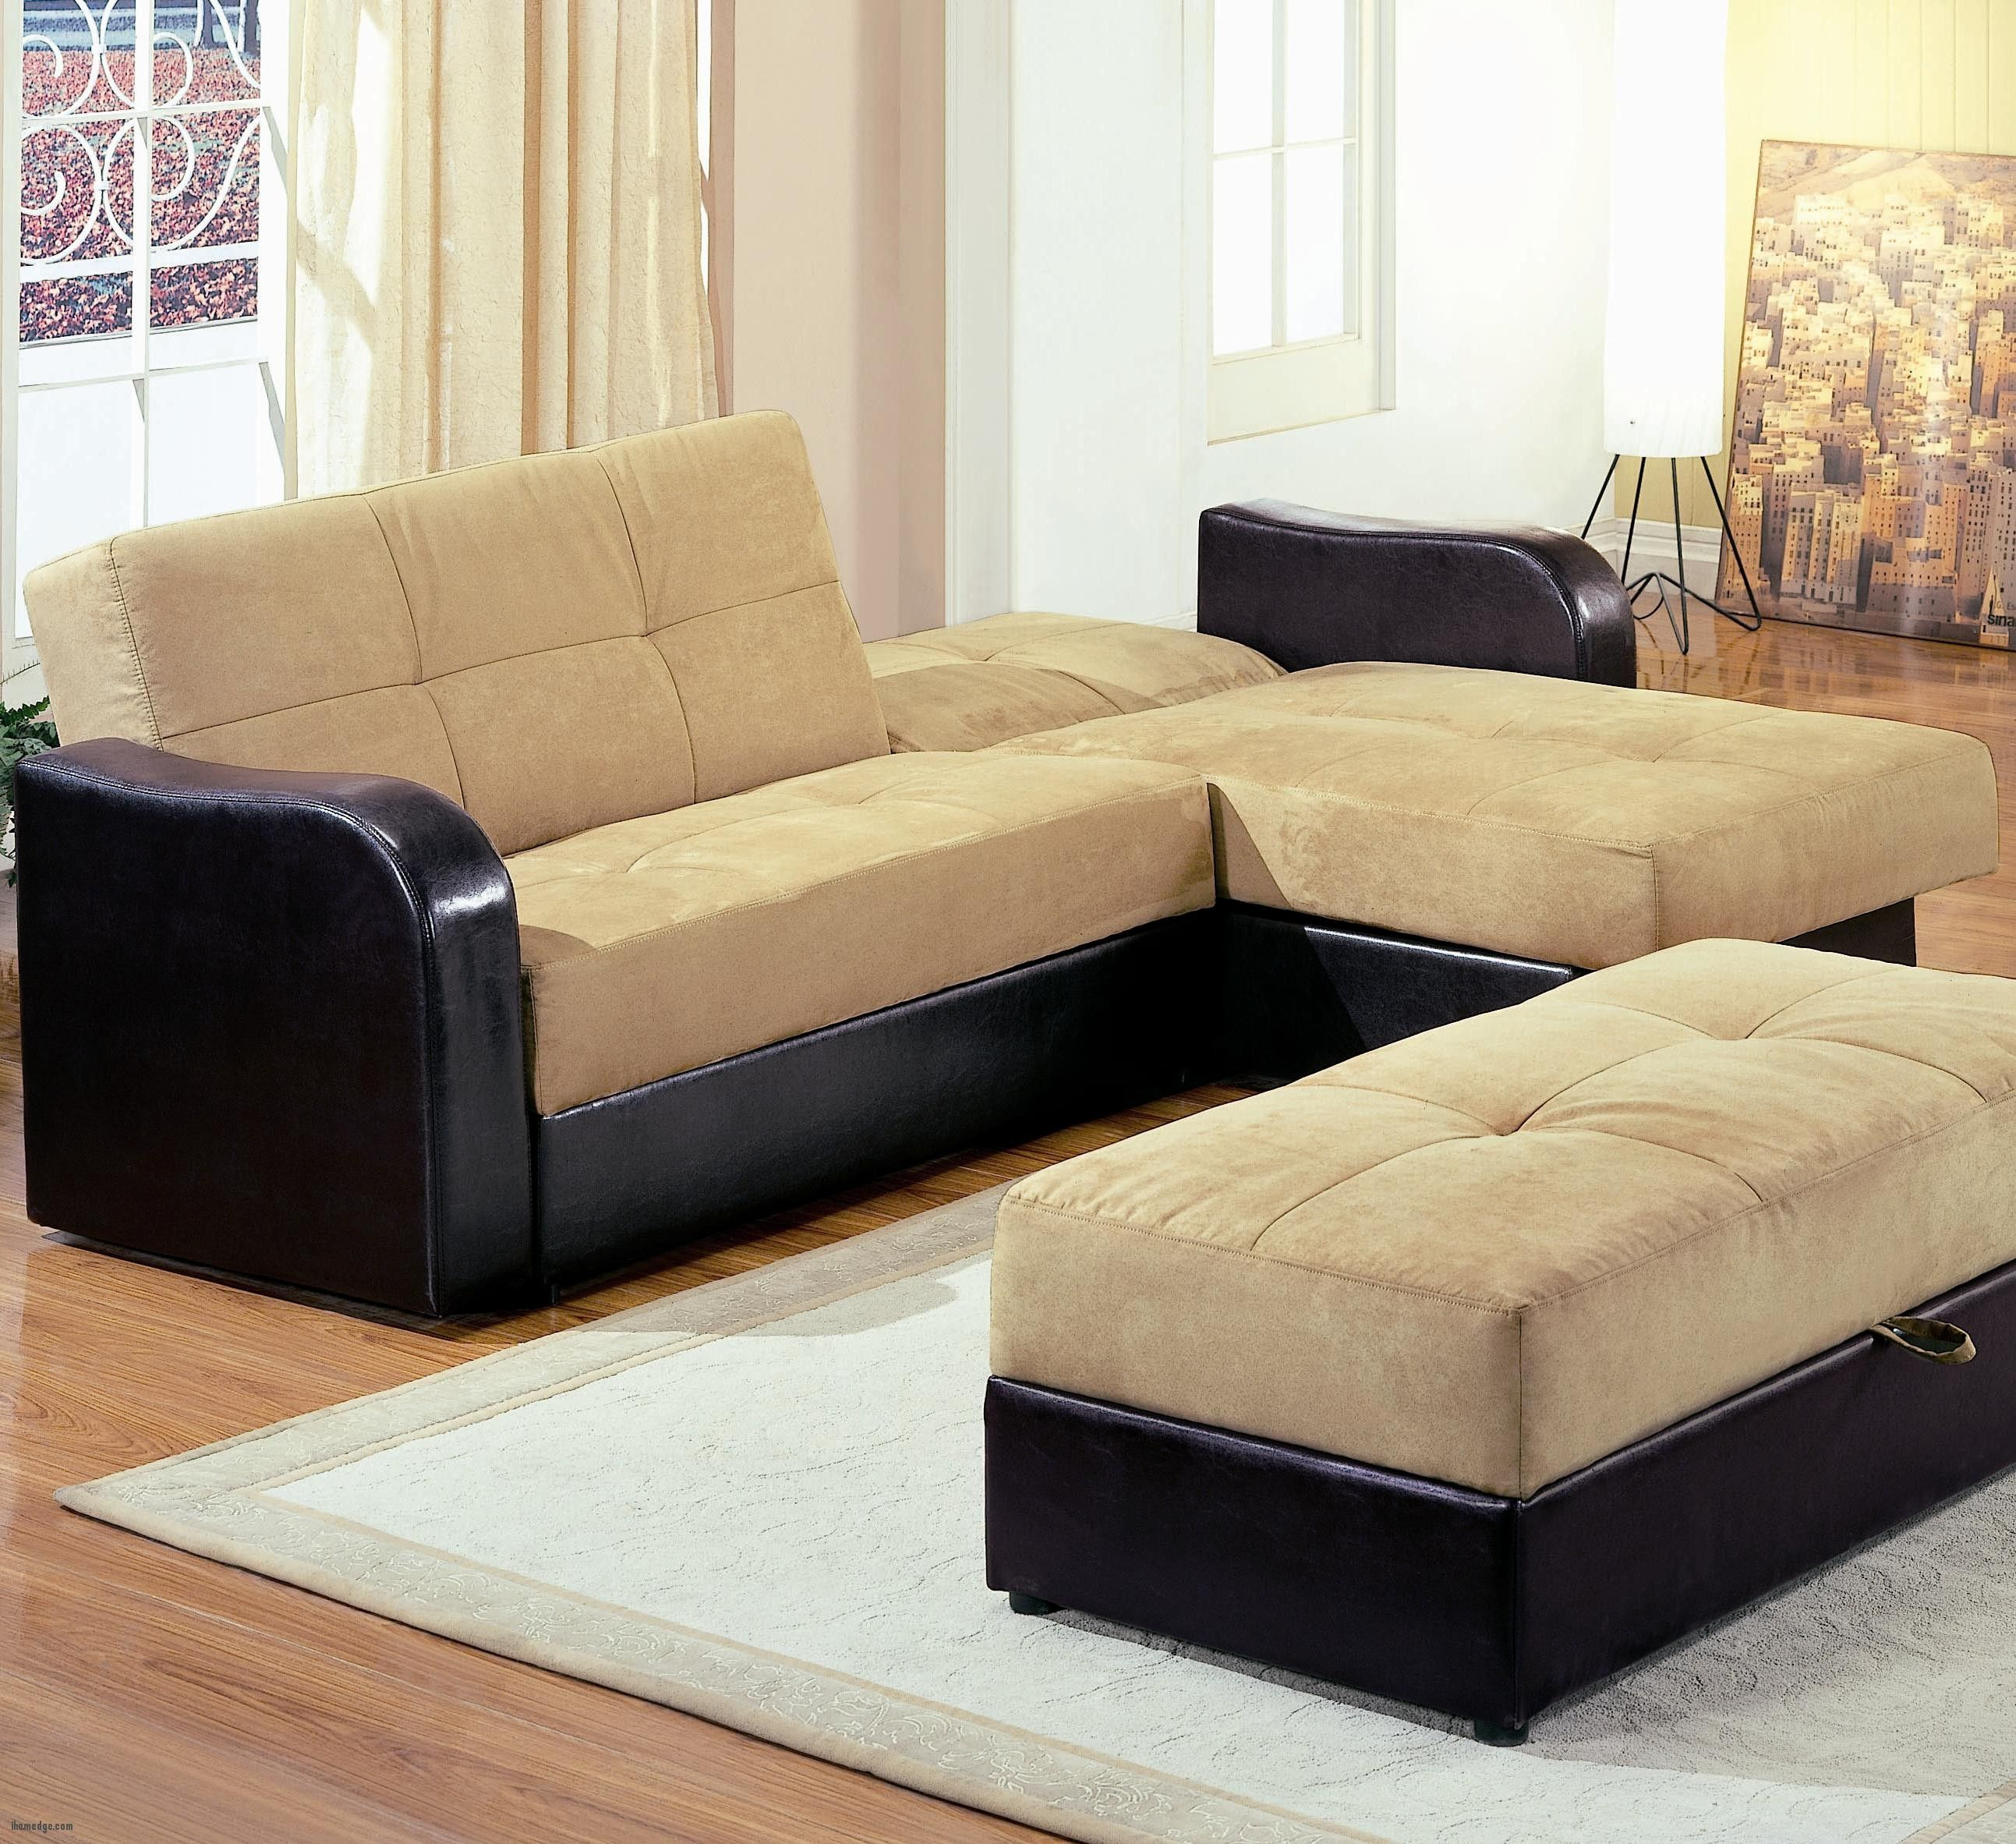 Awesome Fresh Sectional Sleeper Sofa Bed And L Shaped Http Ihomedge 23223